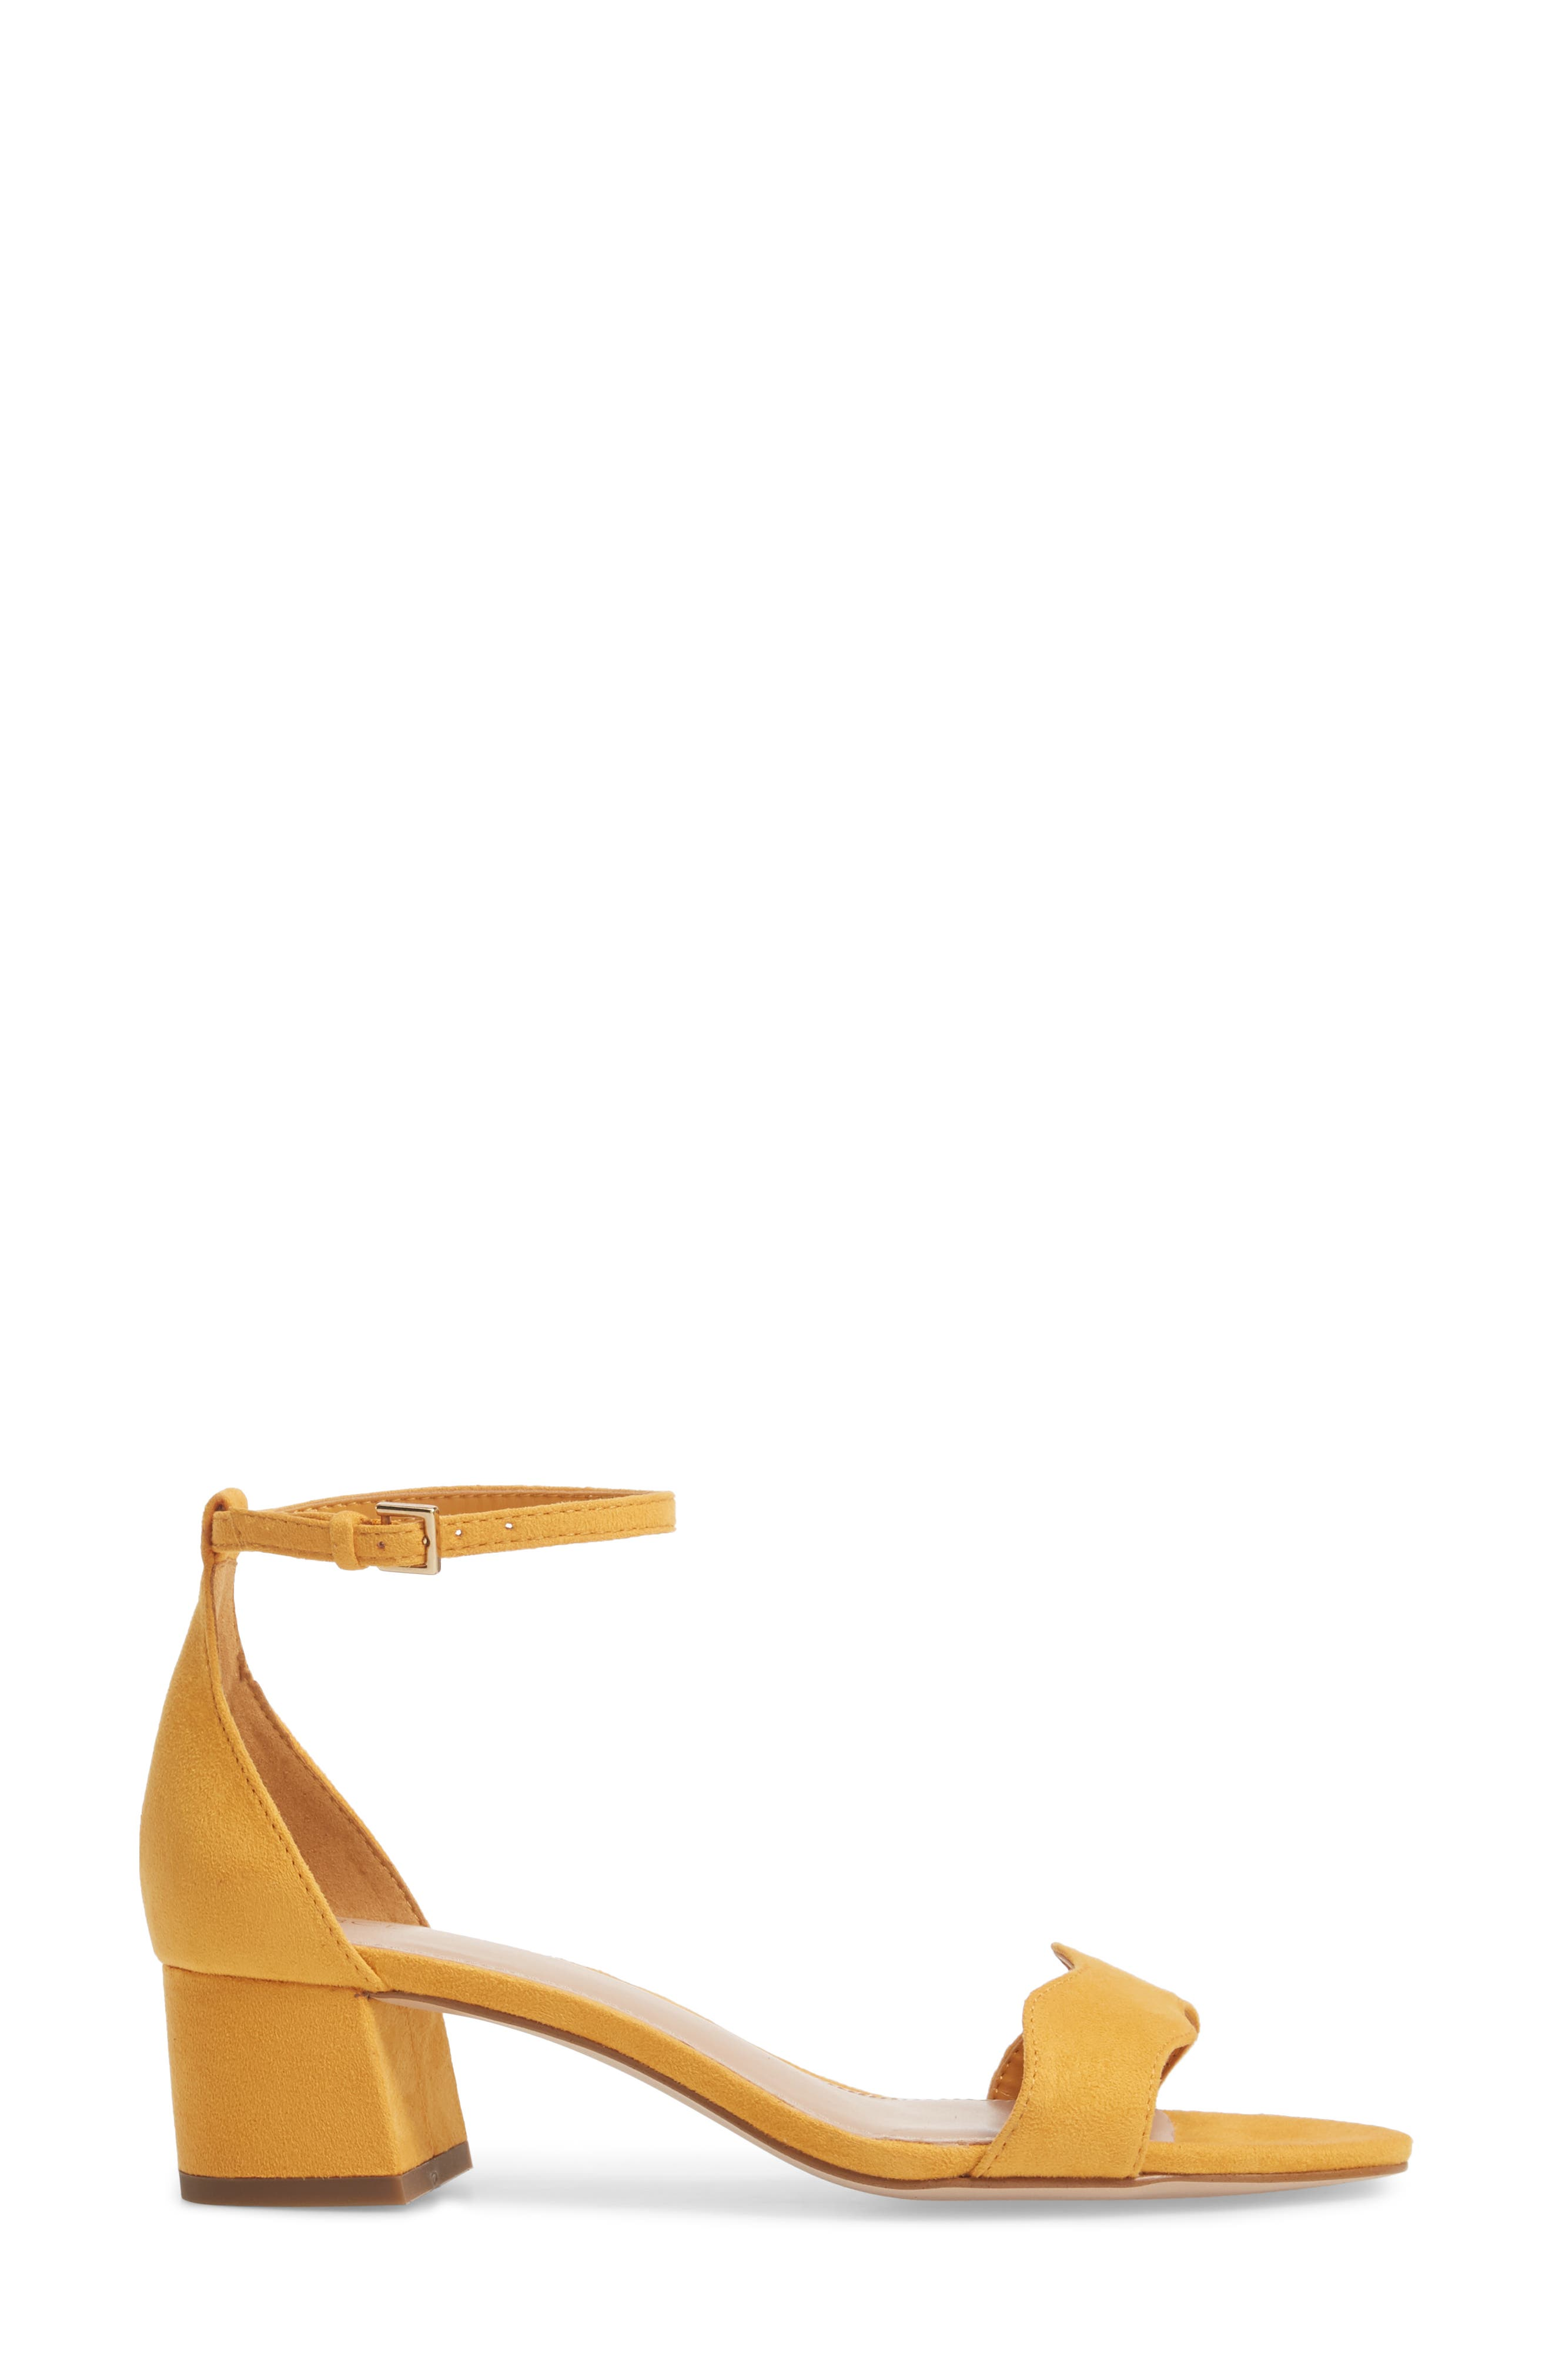 Farlyn Ankle Strap Sandal,                             Alternate thumbnail 3, color,                             Marigold Faux Leather